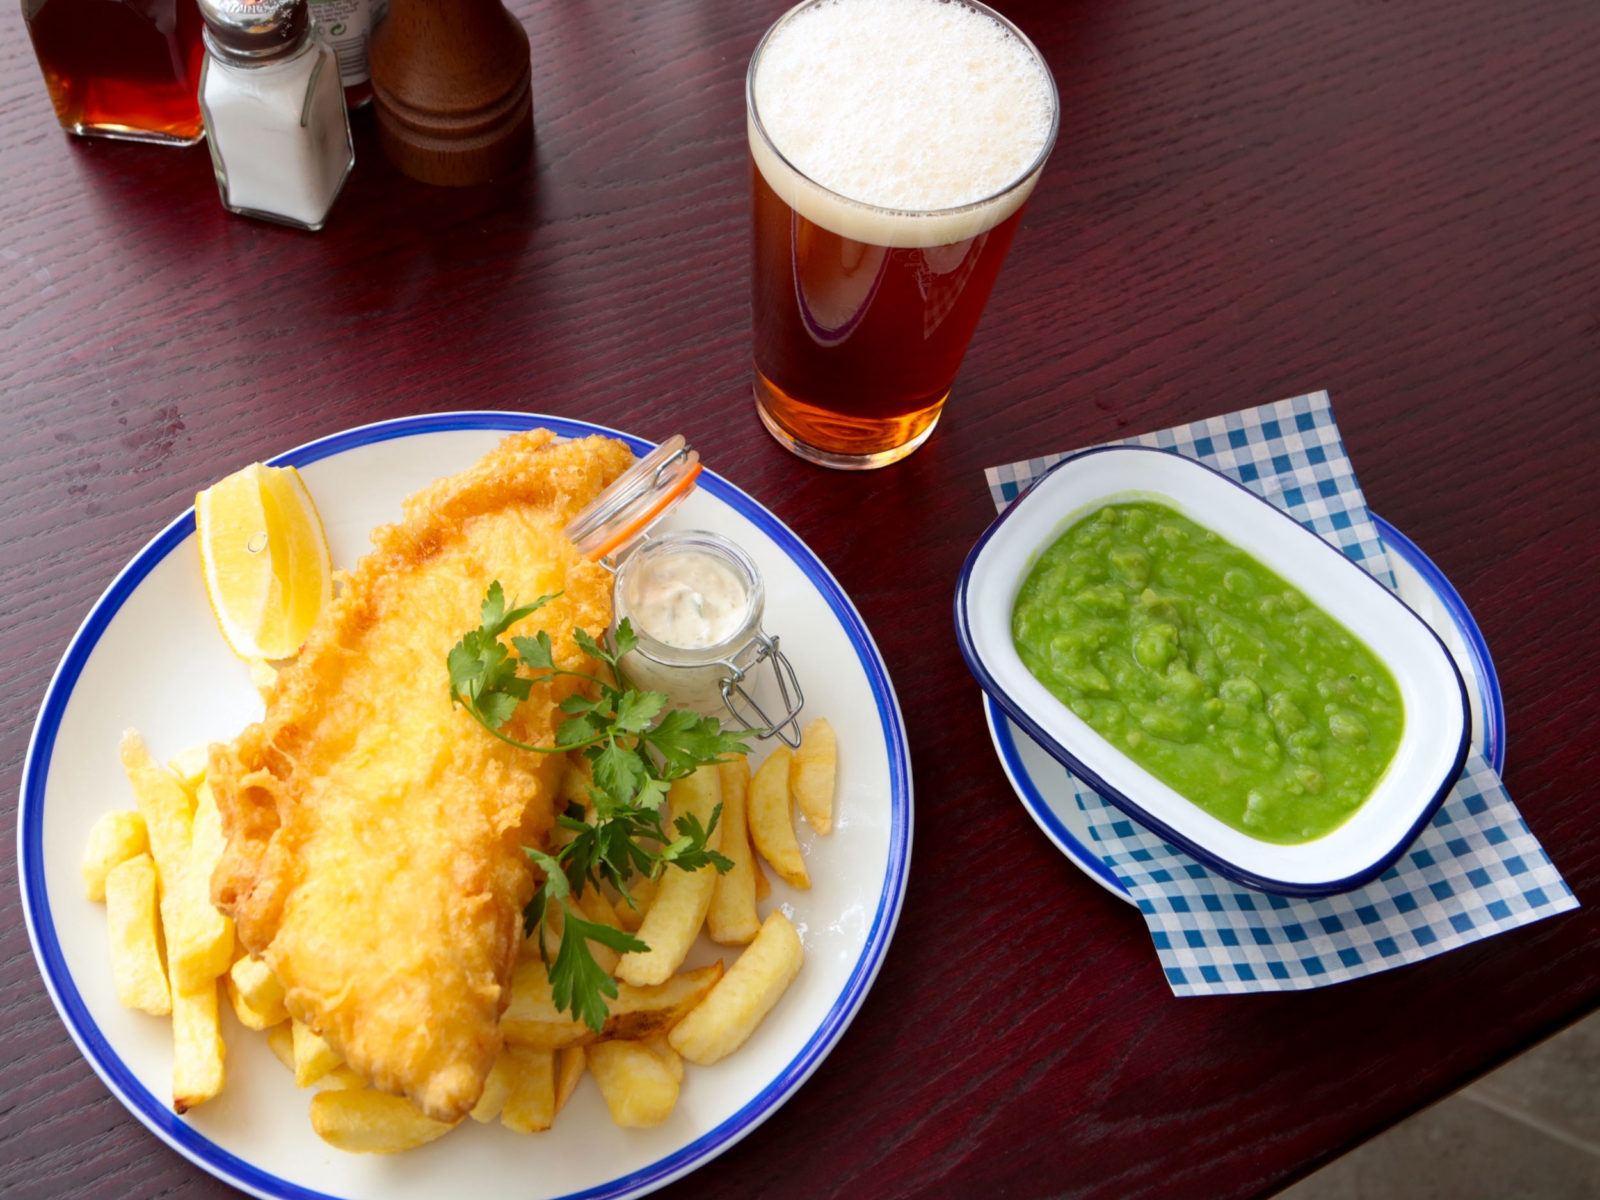 Our famous FISH HOUSE fish & chips with a fresh pint.